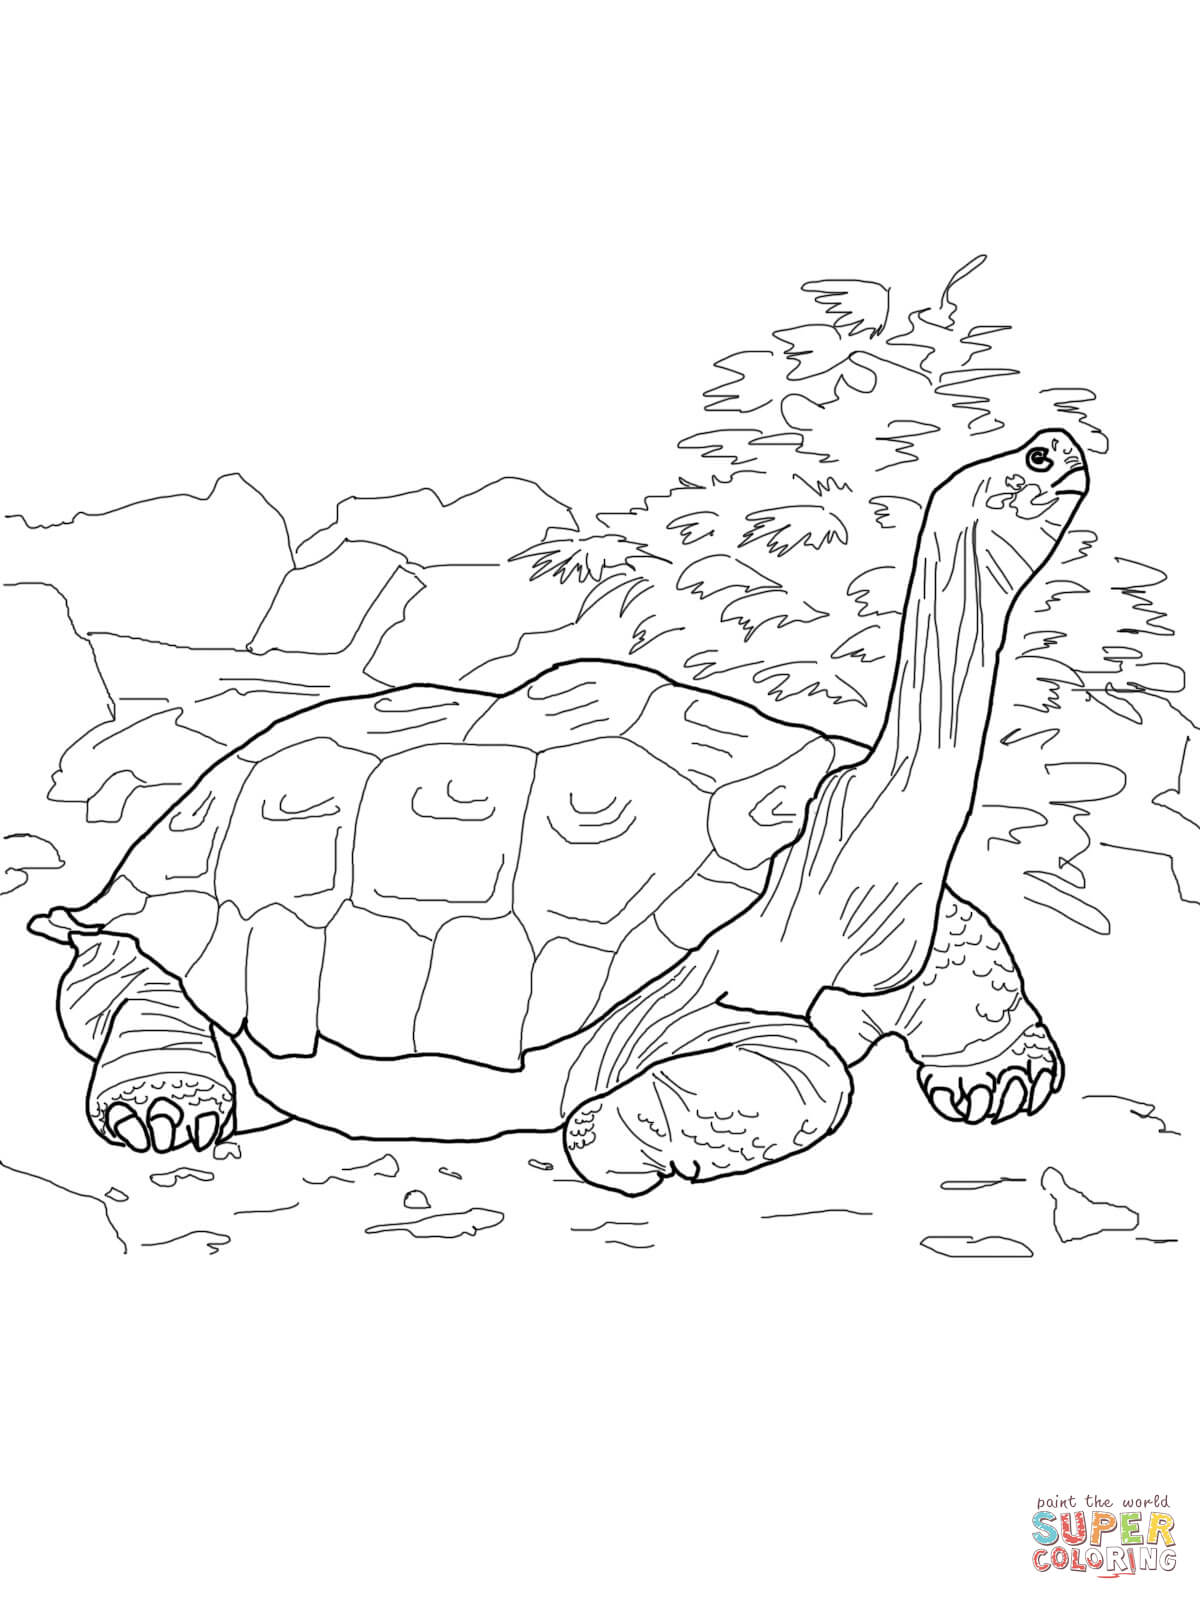 Sulcata Tortoise coloring #11, Download drawings